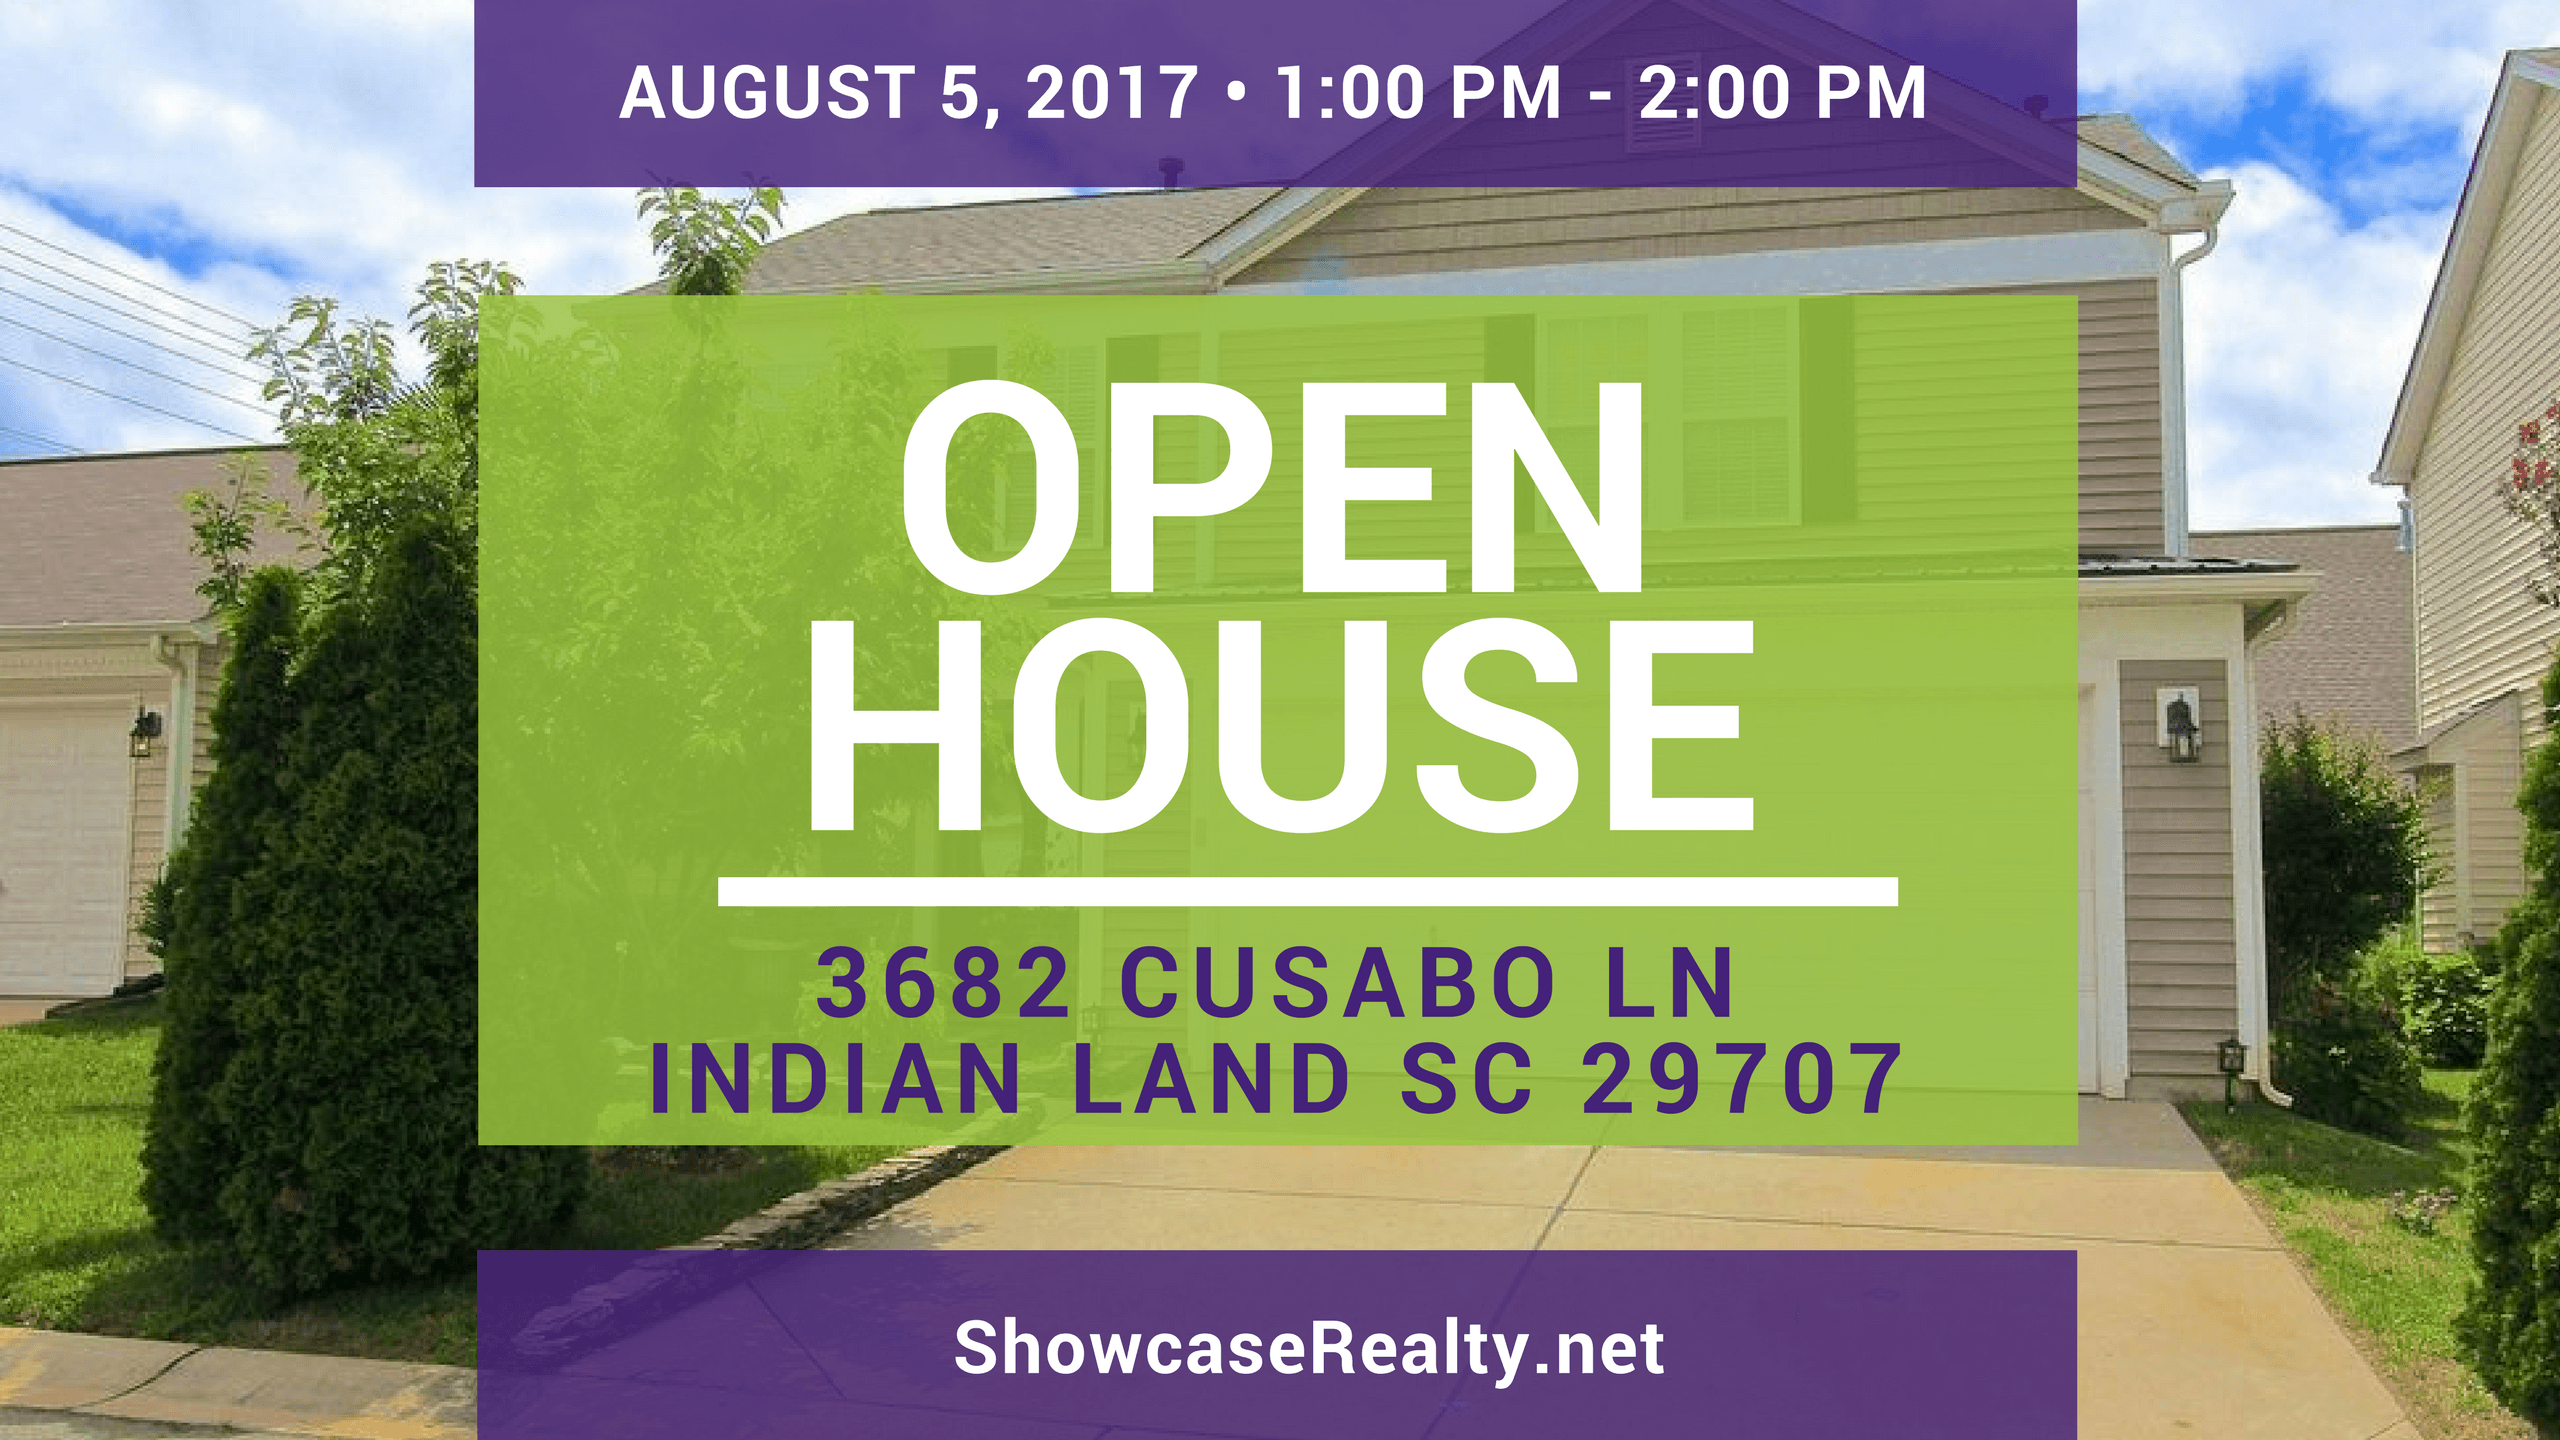 Home for Sale Open House: 3682 Cusabo Ln Indian Land SC 29707